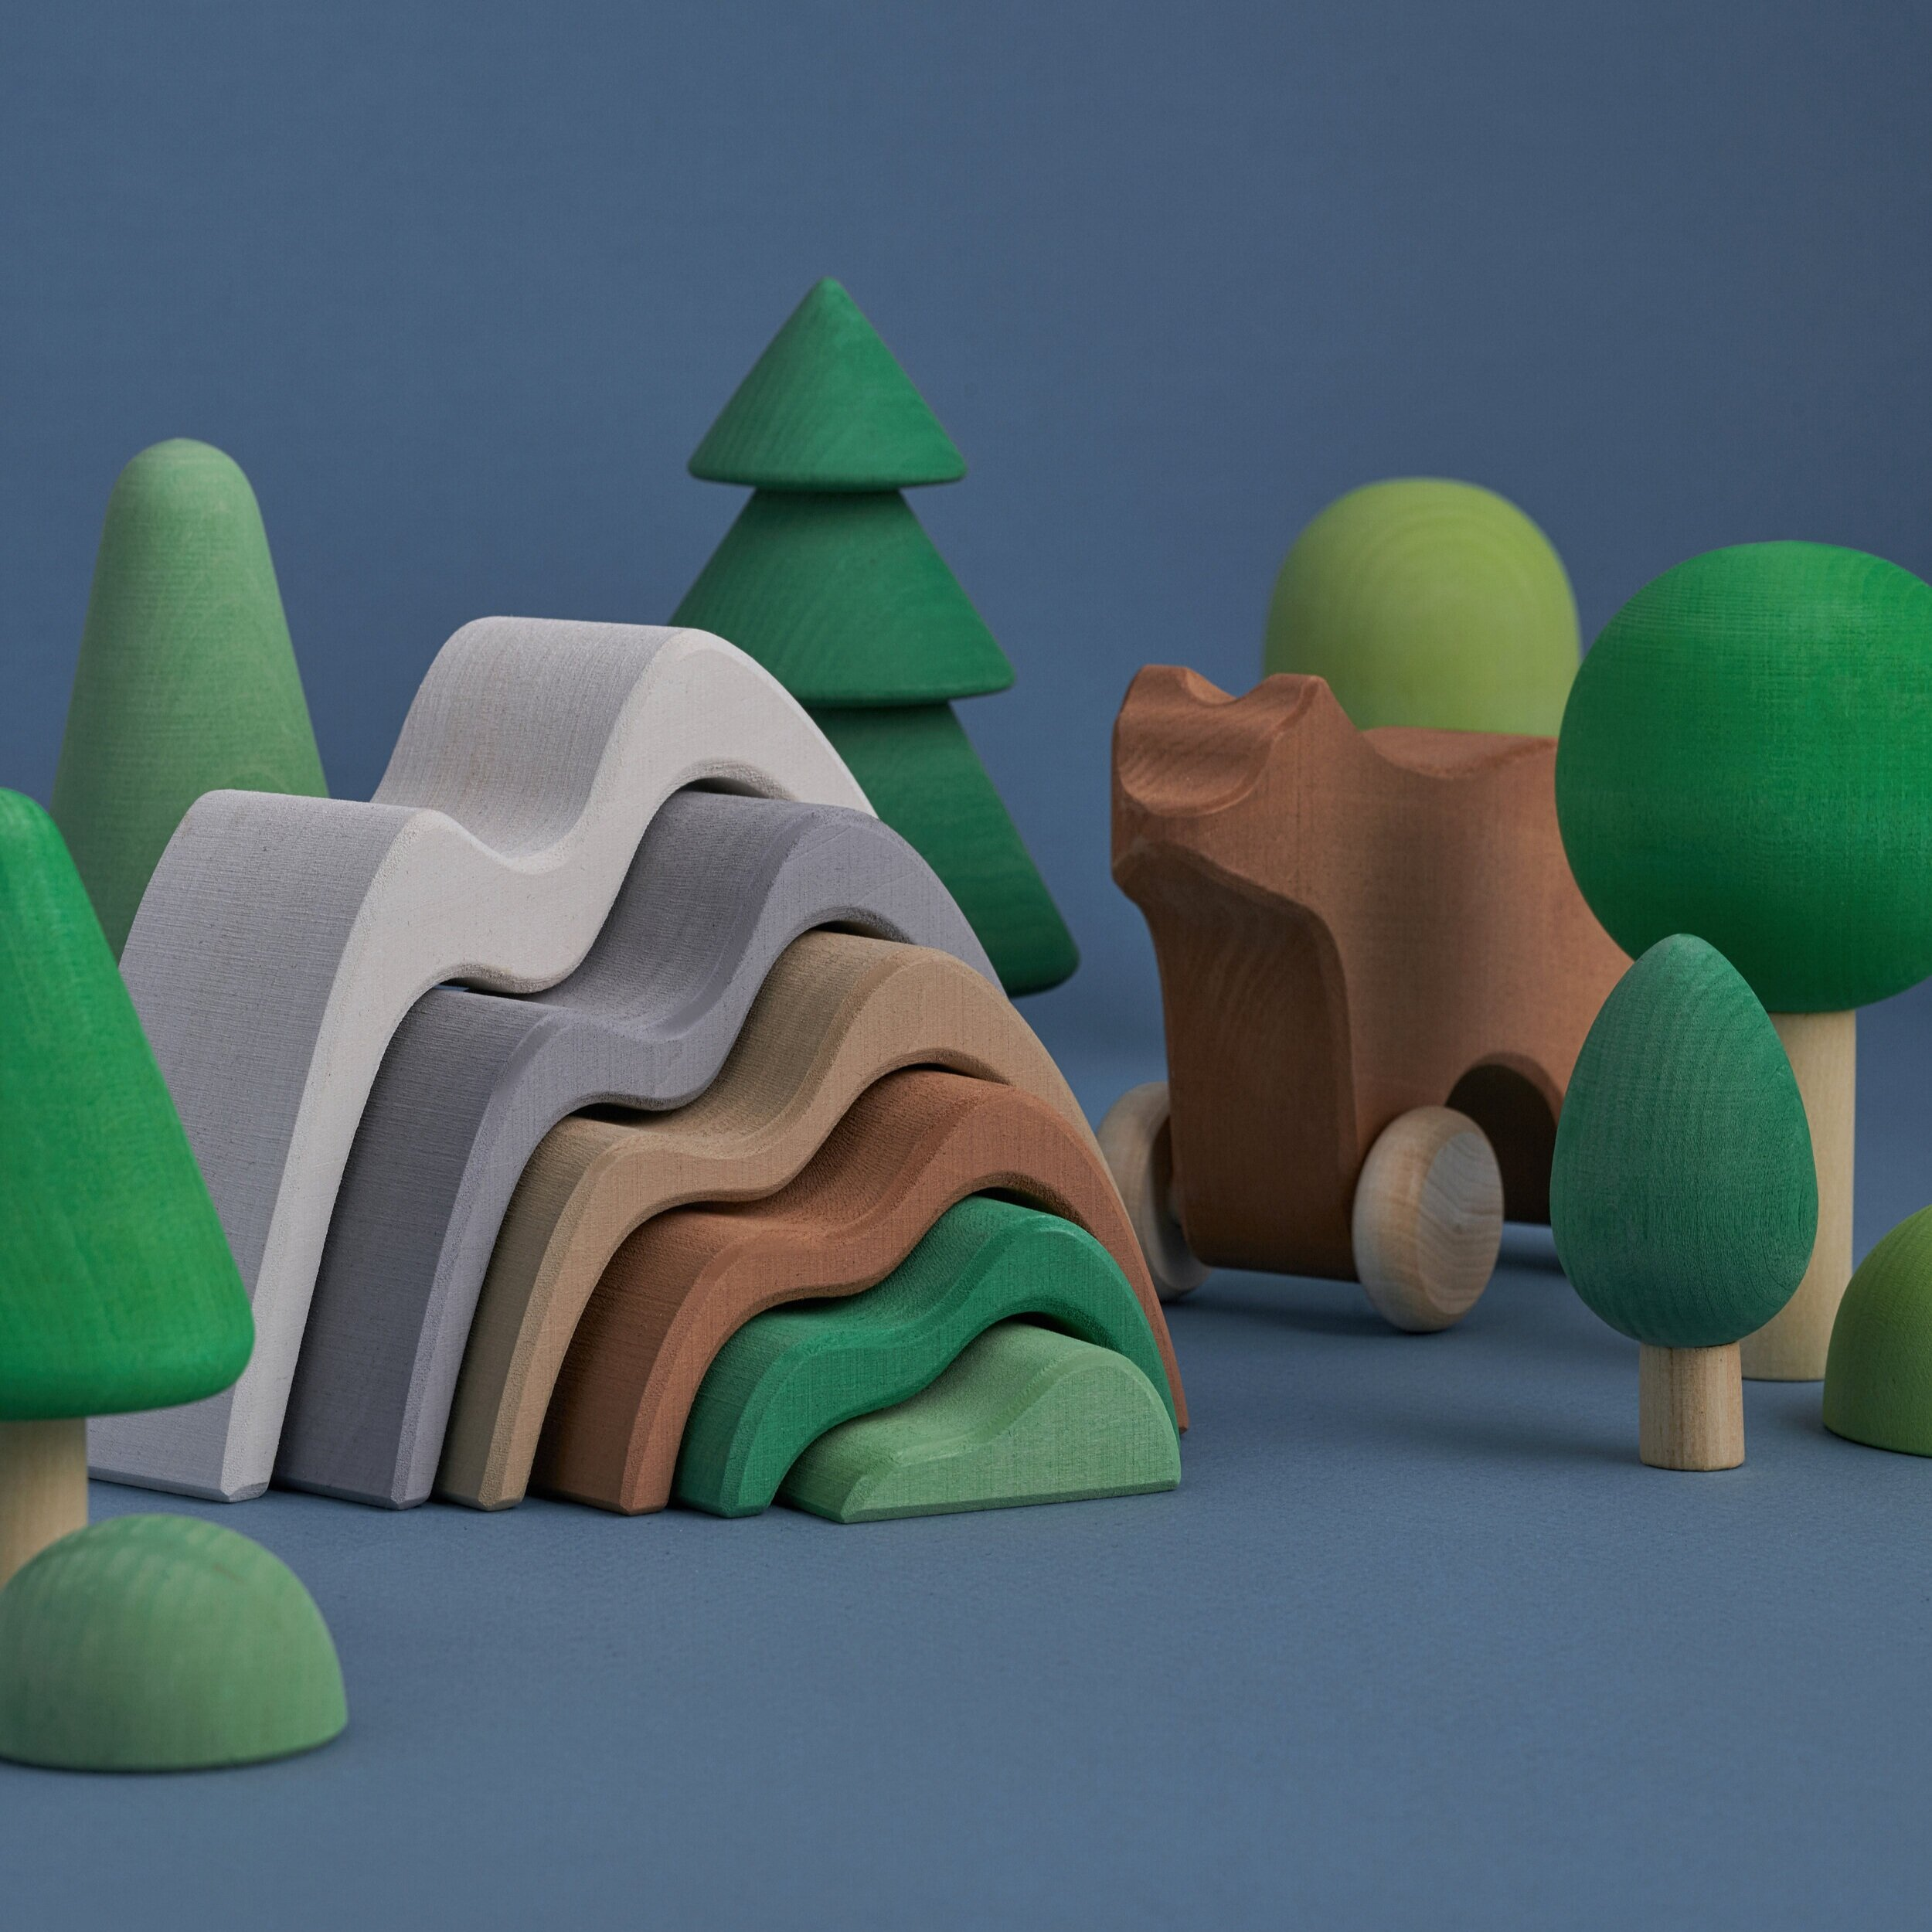 Raduga Grez - Handmade - Beautiful handmade wooden toys, made in the Mountain regions of Moscow from sustainable Lime Wood and coloured with natural, safe stains. left unvarnished for an easy to stack natural finish.<<< Take a look at our beautiful range here